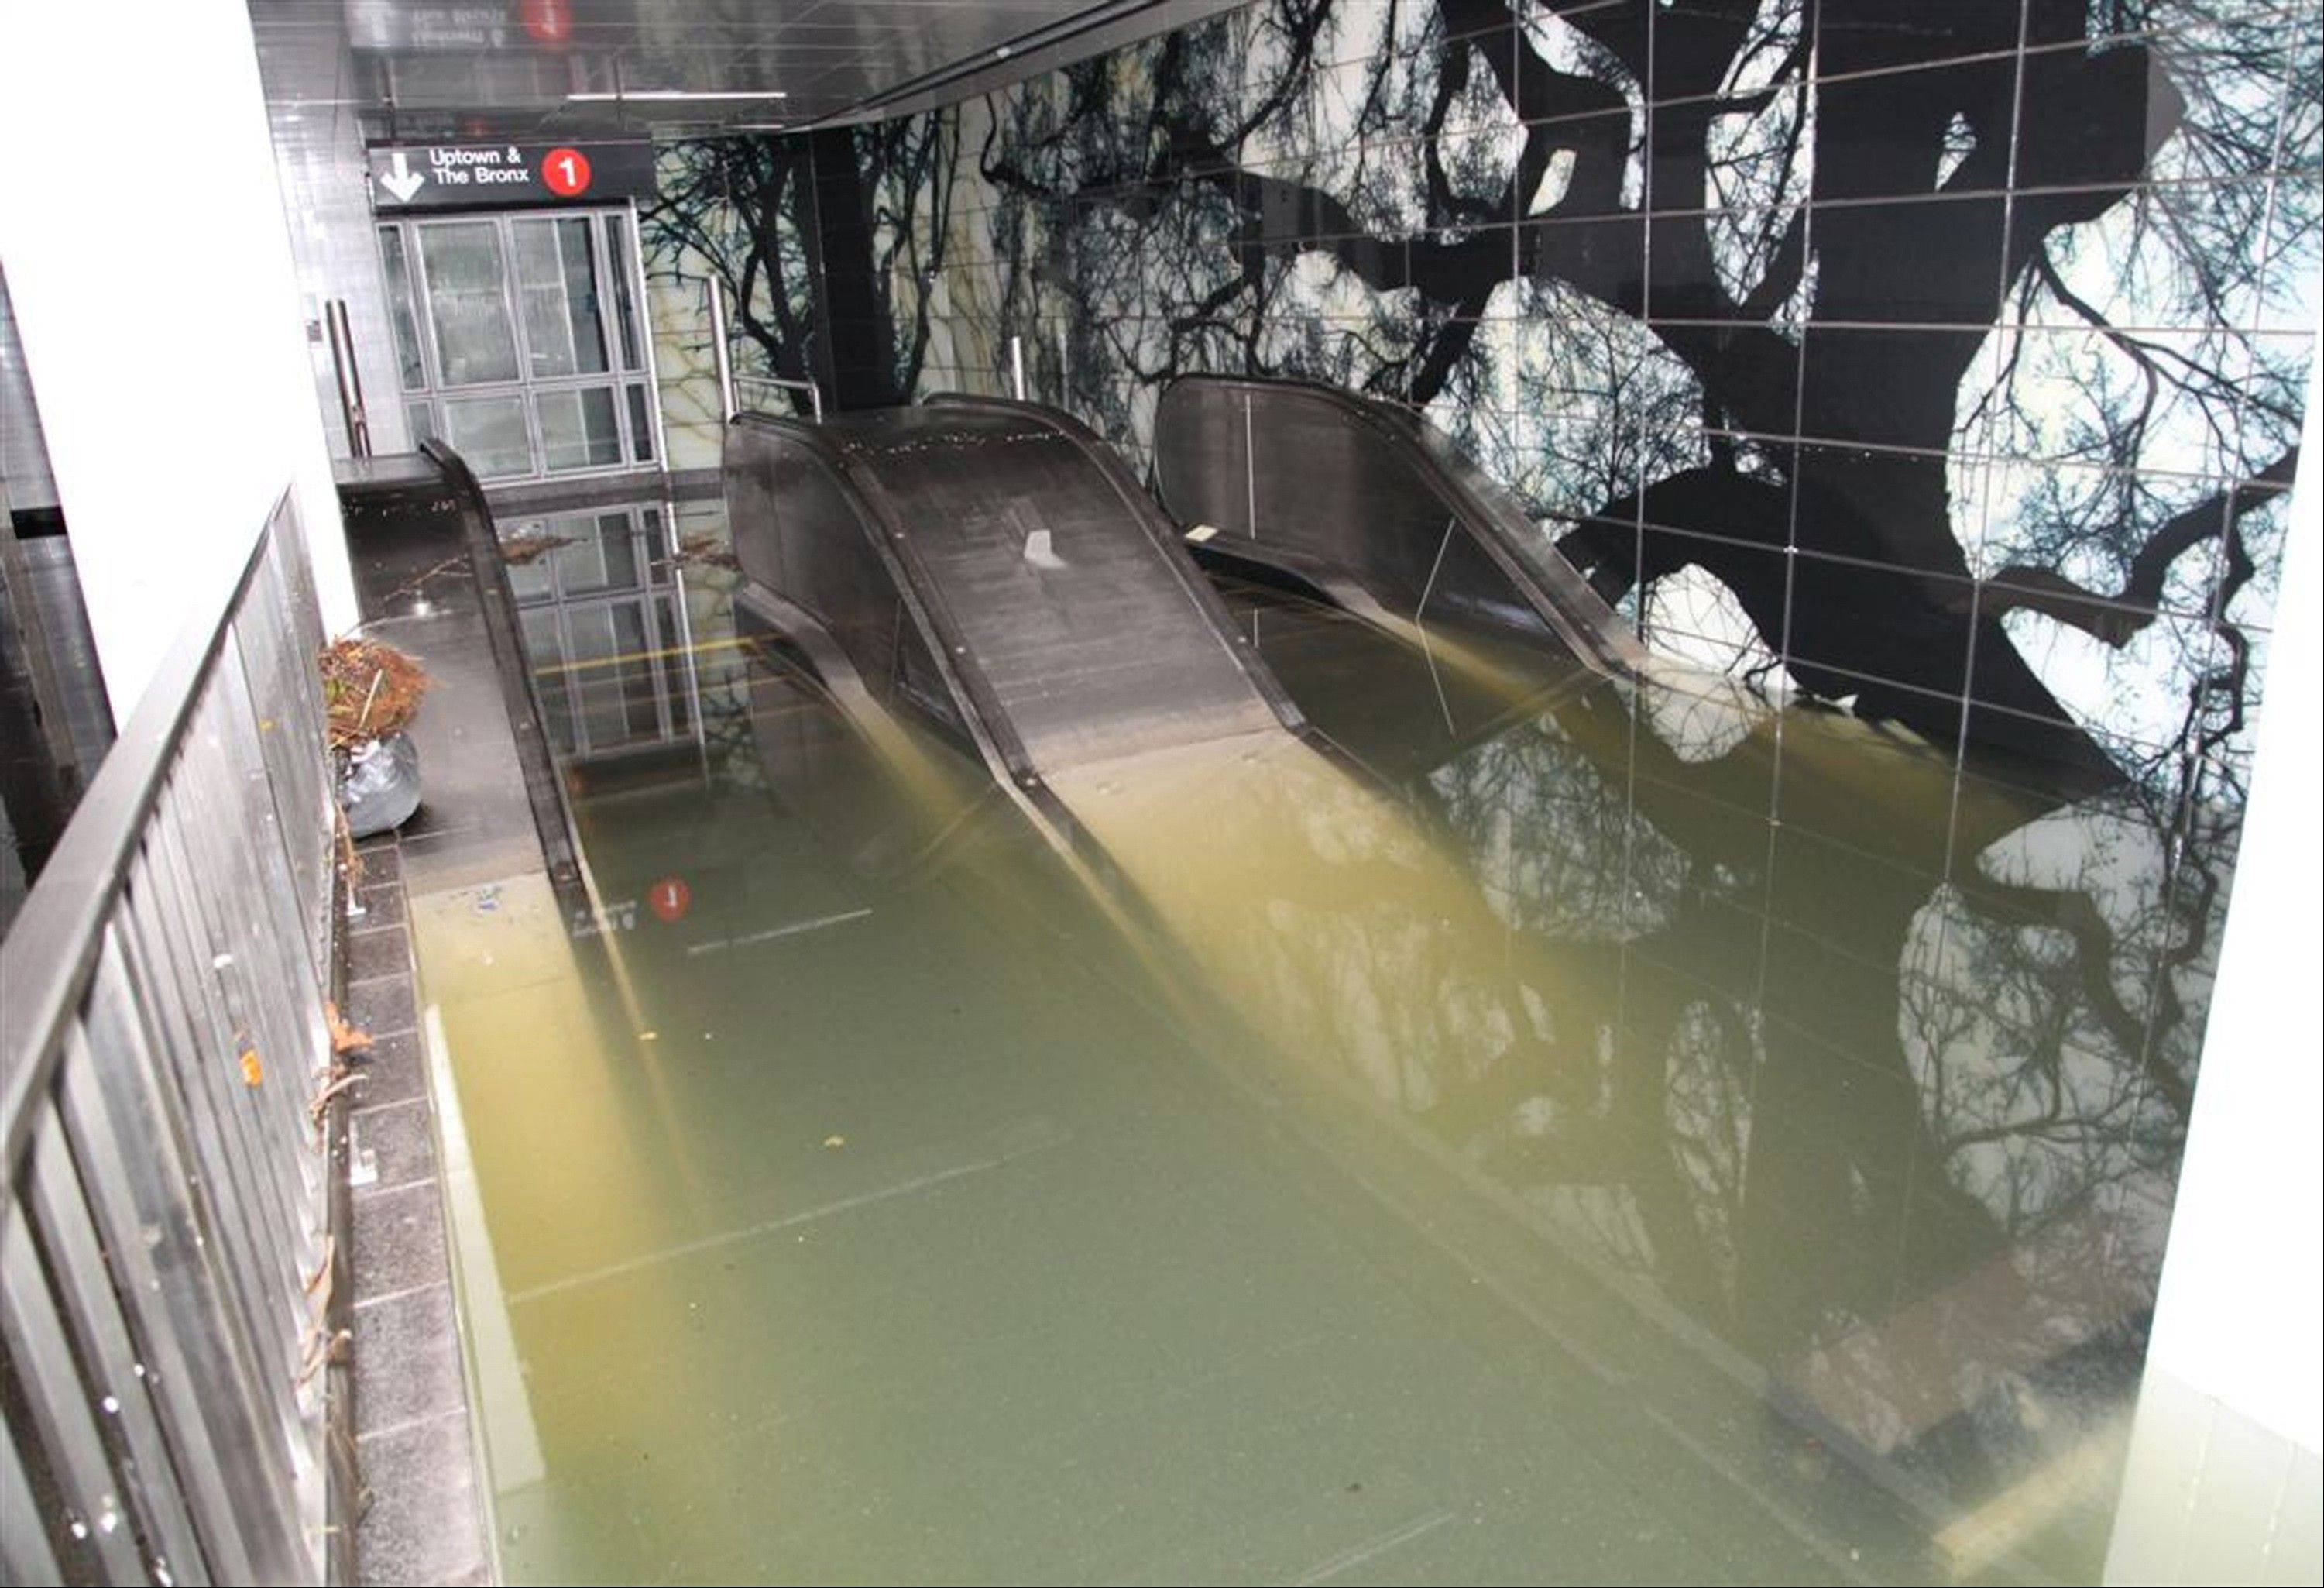 New York's Metropolitan Transportation Authority, floodwaters rise above the top stair of an escalator in New York City's South Ferry station in the wake of Superstorm Sandy.